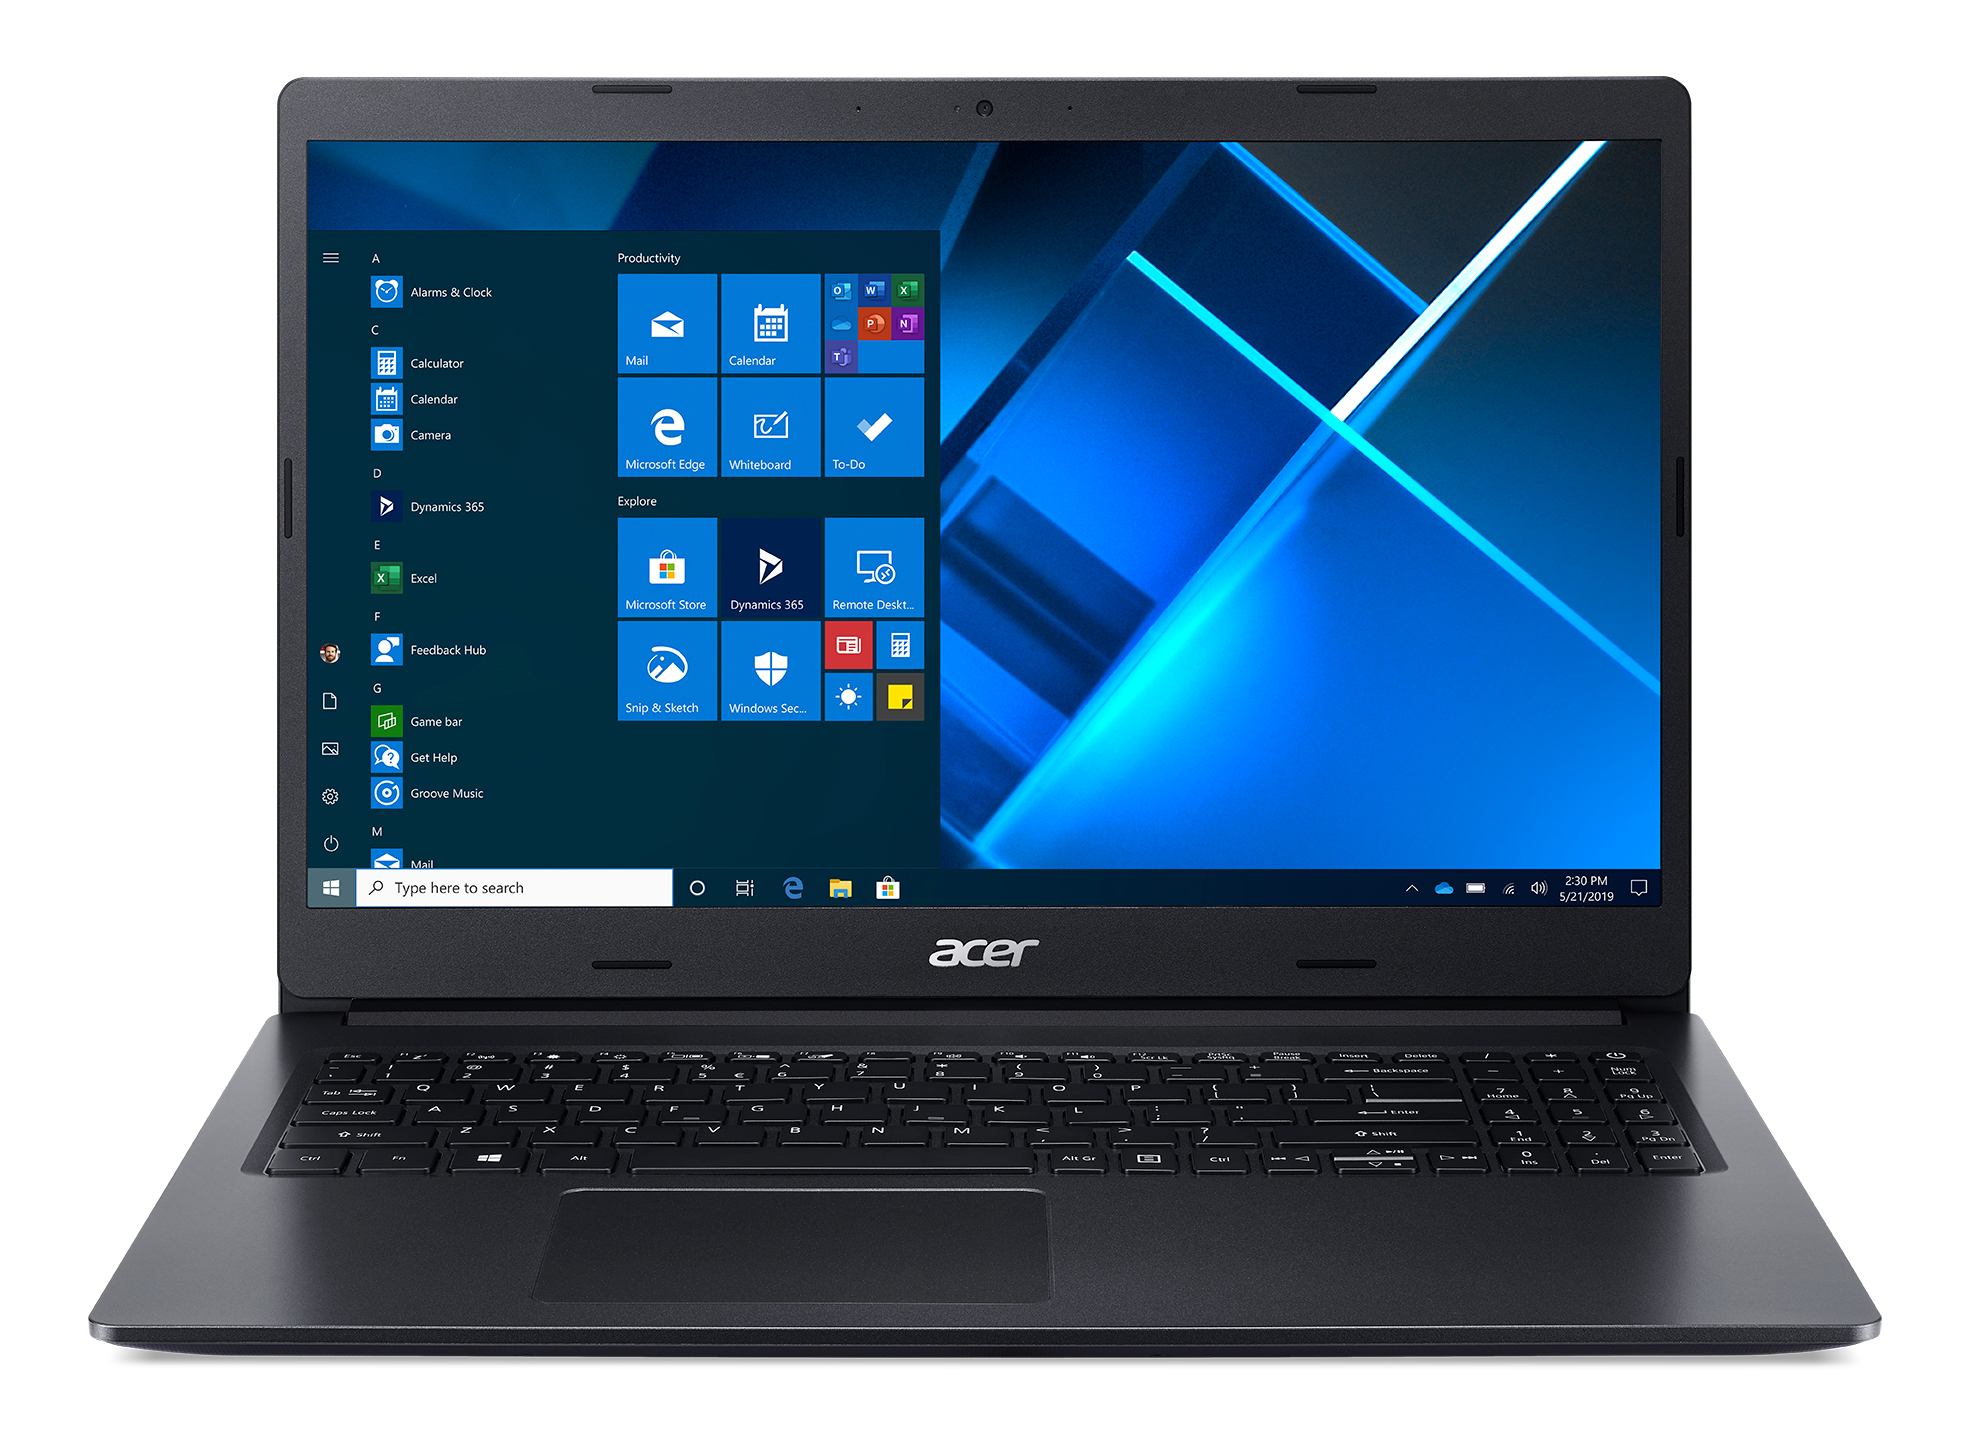 AcerExtensa 15 EX215-22-R40S, Charcoal Black, 15.6 inch FHD LED, AMD Ryzen 3 3250U, 8GB DDR4, 256GB PCIe NVMe SSD, Vega 3 Graphics, No ODD, Wi-Fi 5 AC + BT 4.0, 48 Wh battery, HD webcam with 2 Microphones, Windows 10 Home in S-Mode , US Intl keyboard